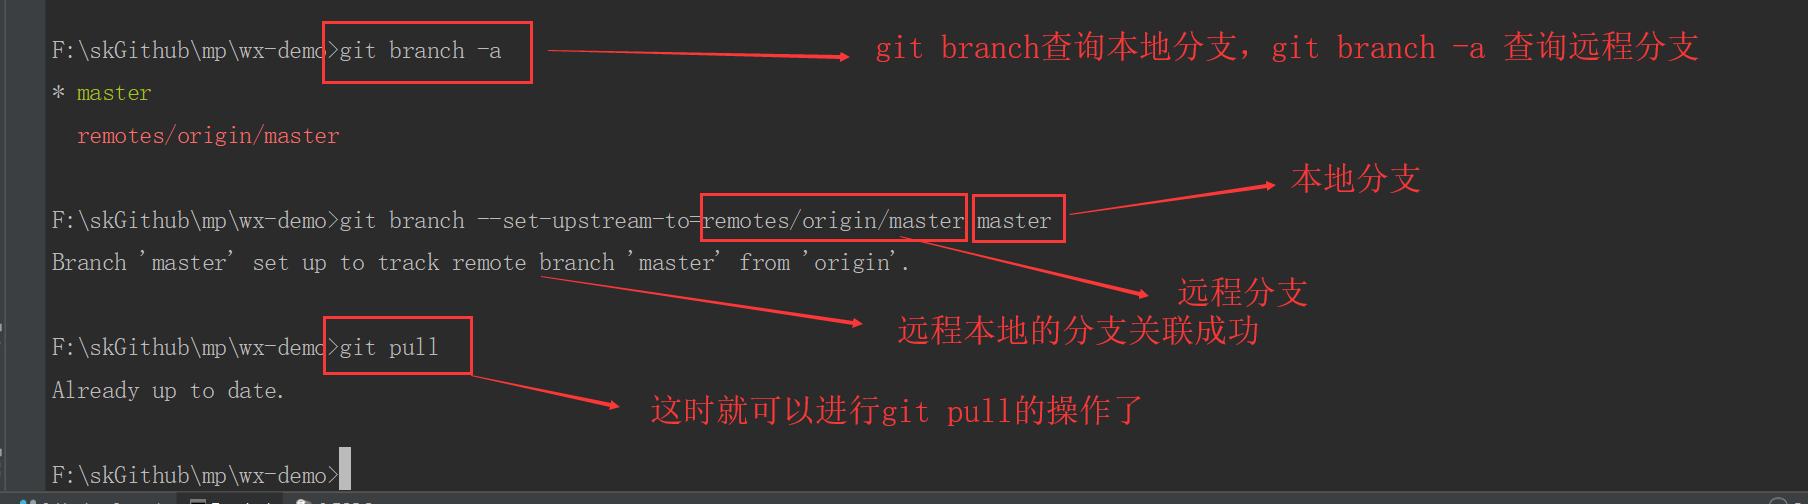 git-branch-2.png